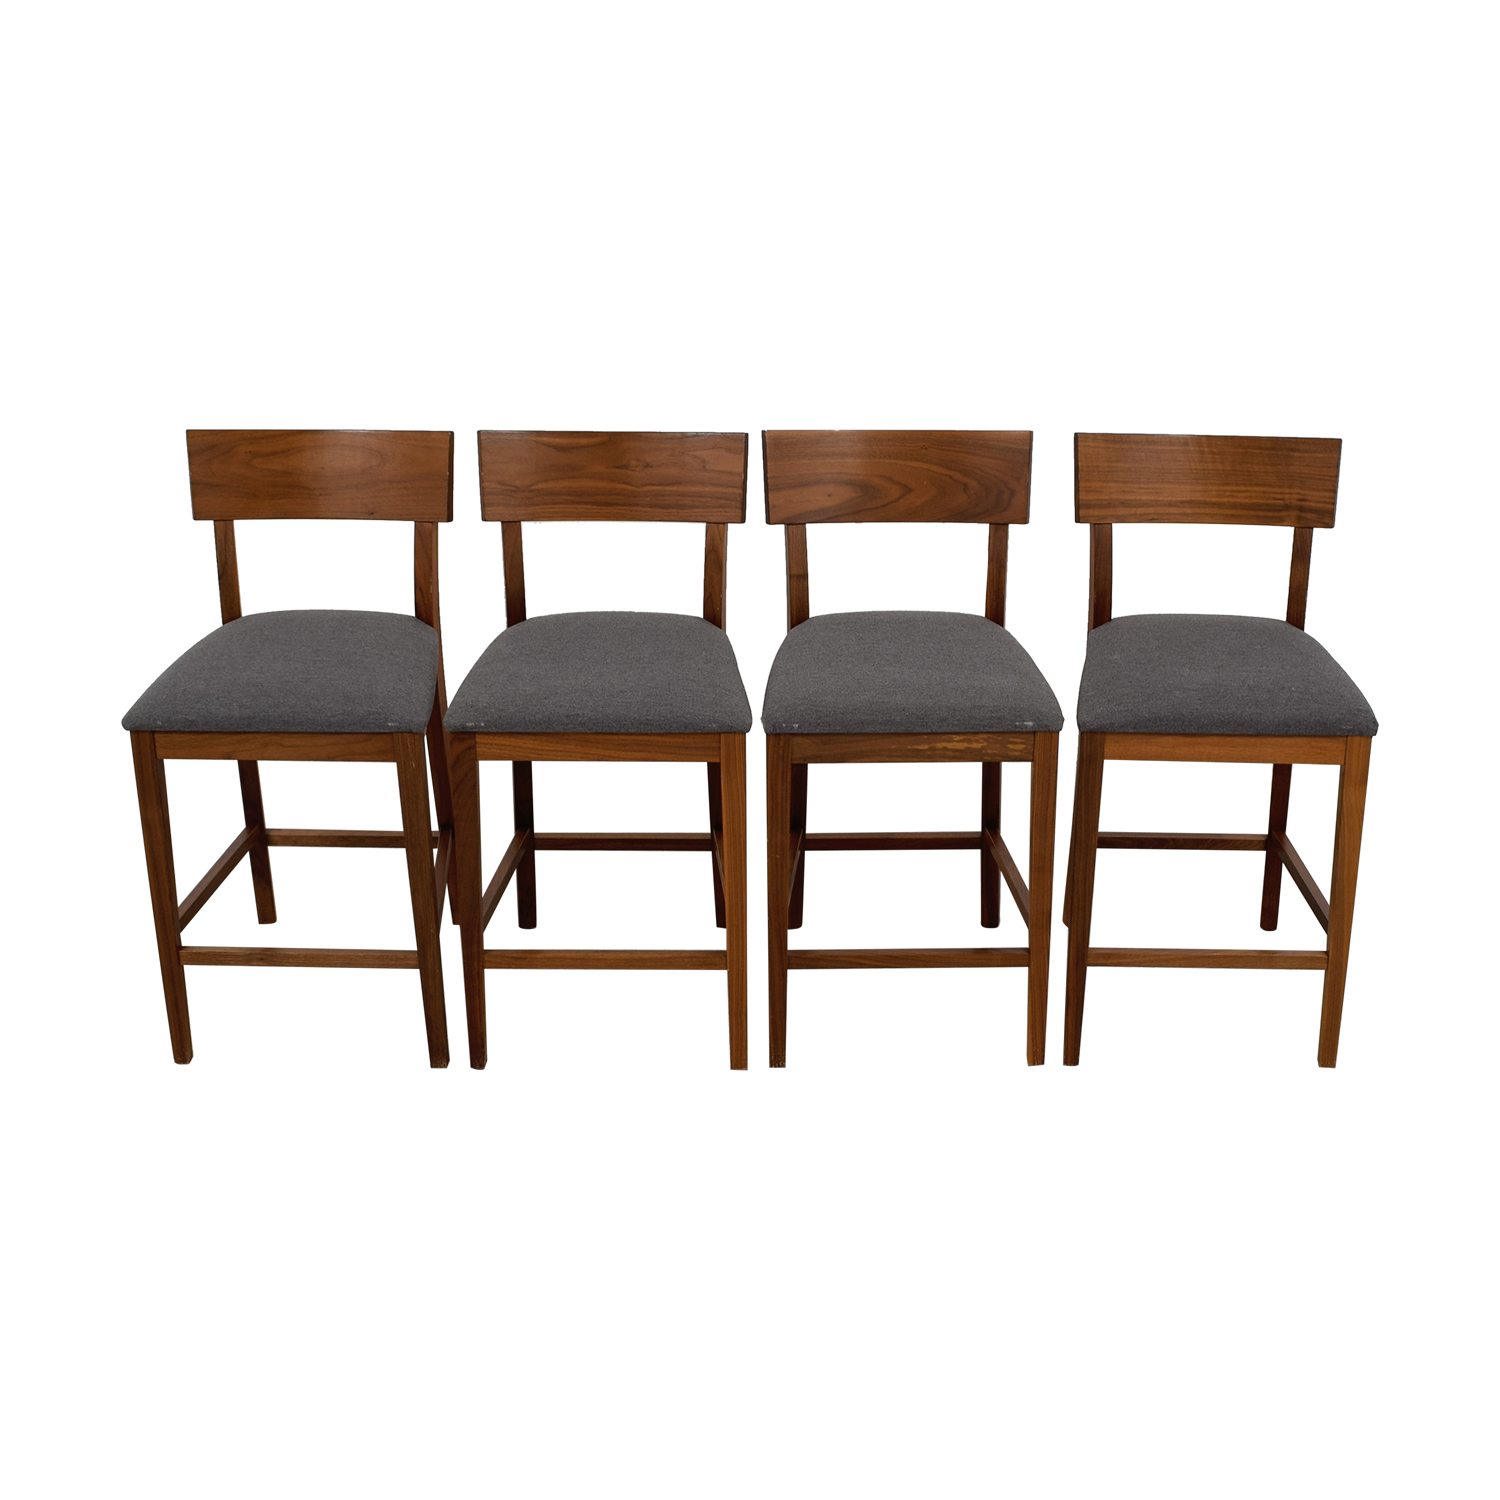 Room & Board Doyle Upholstered Counter Stools / Chairs